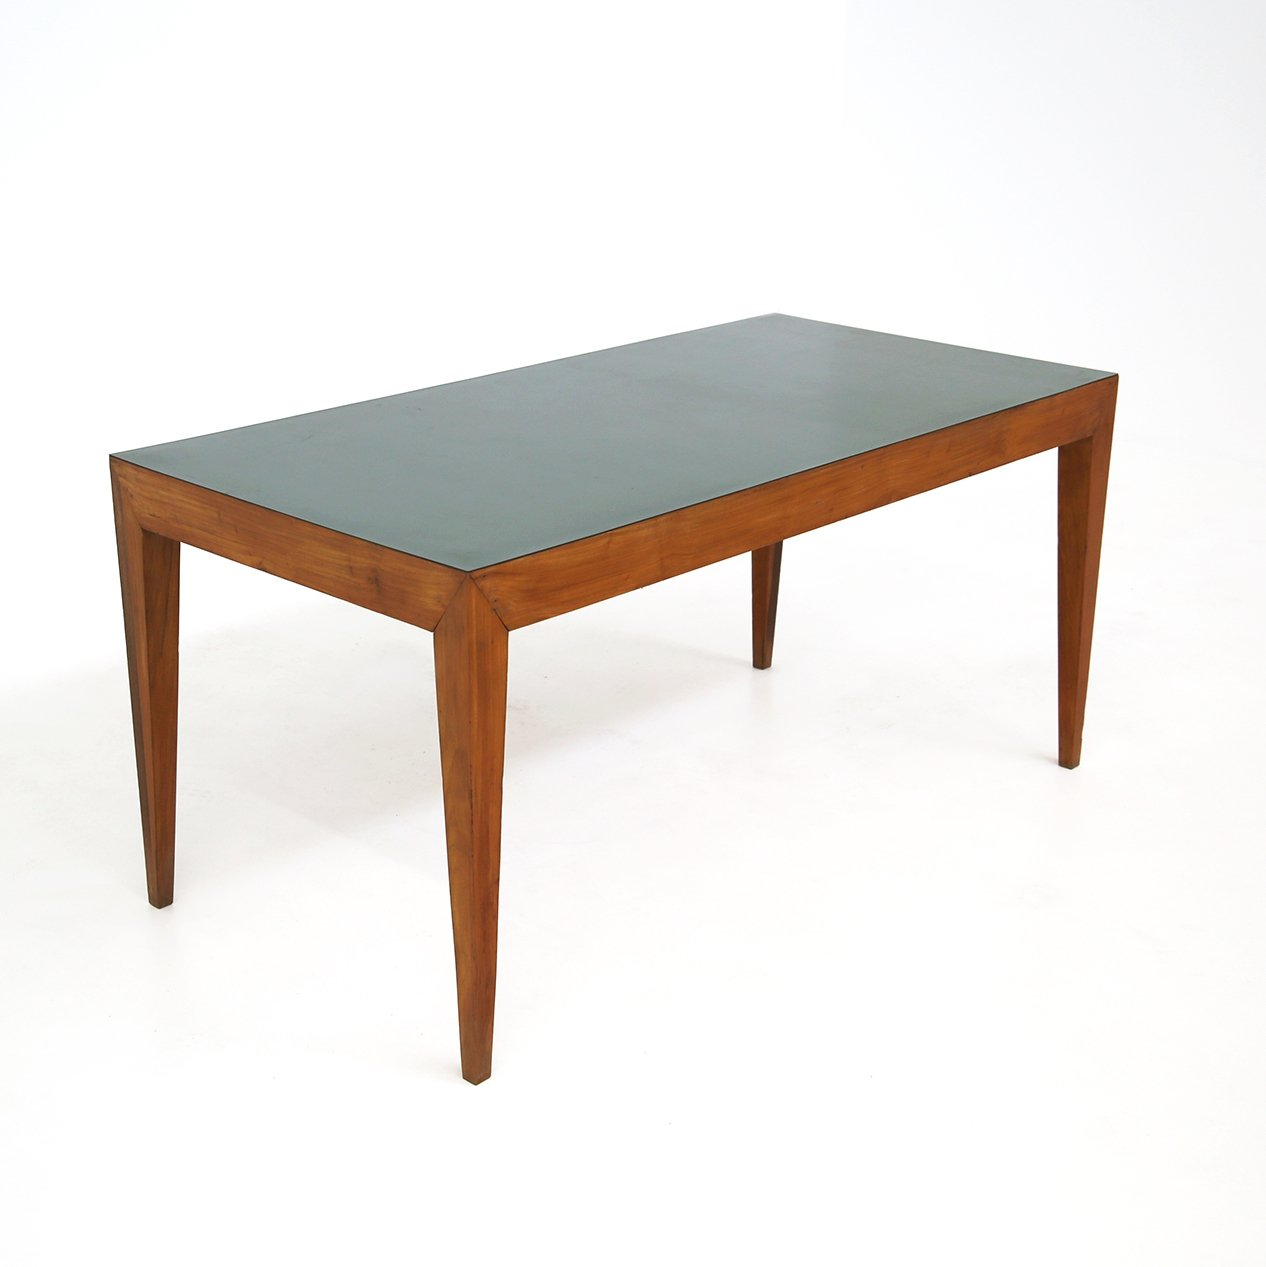 Dining Table By Gio Ponti In Walnut Green Formica 1950s 136901